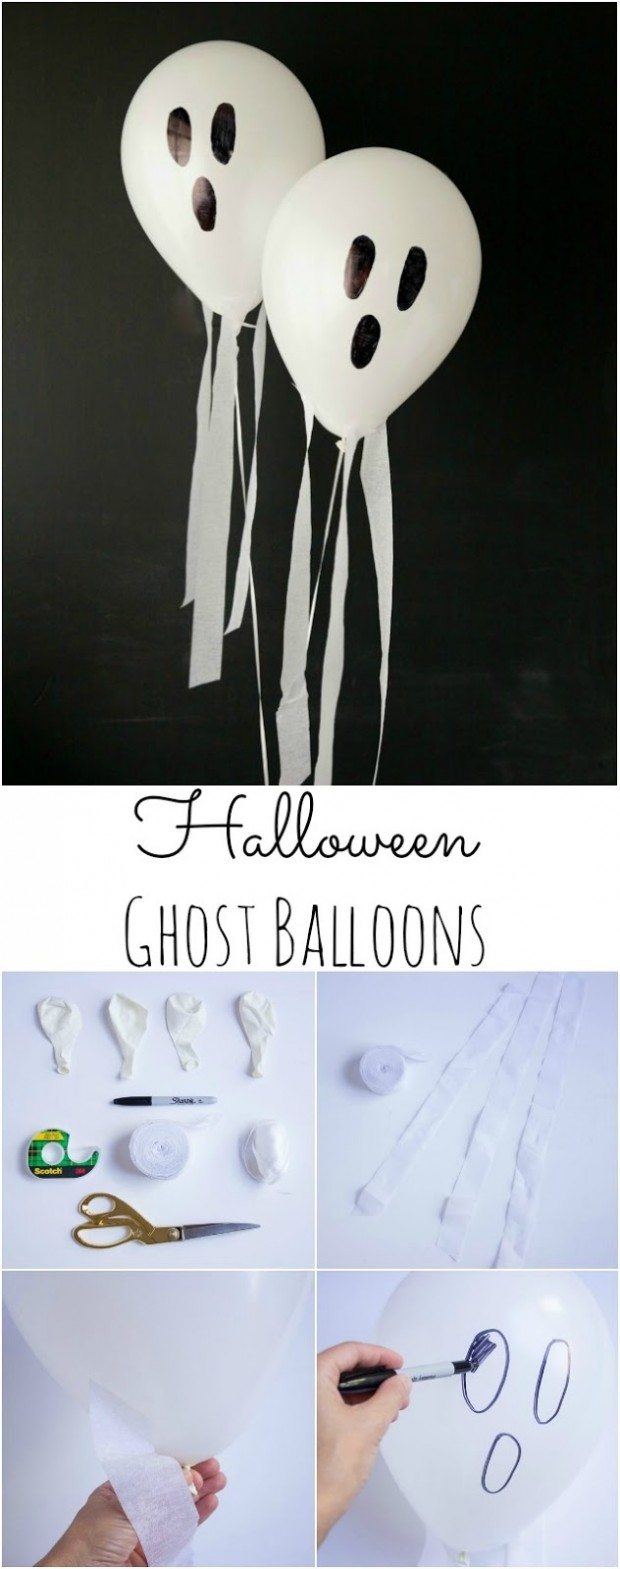 diy halloween decorations (10)